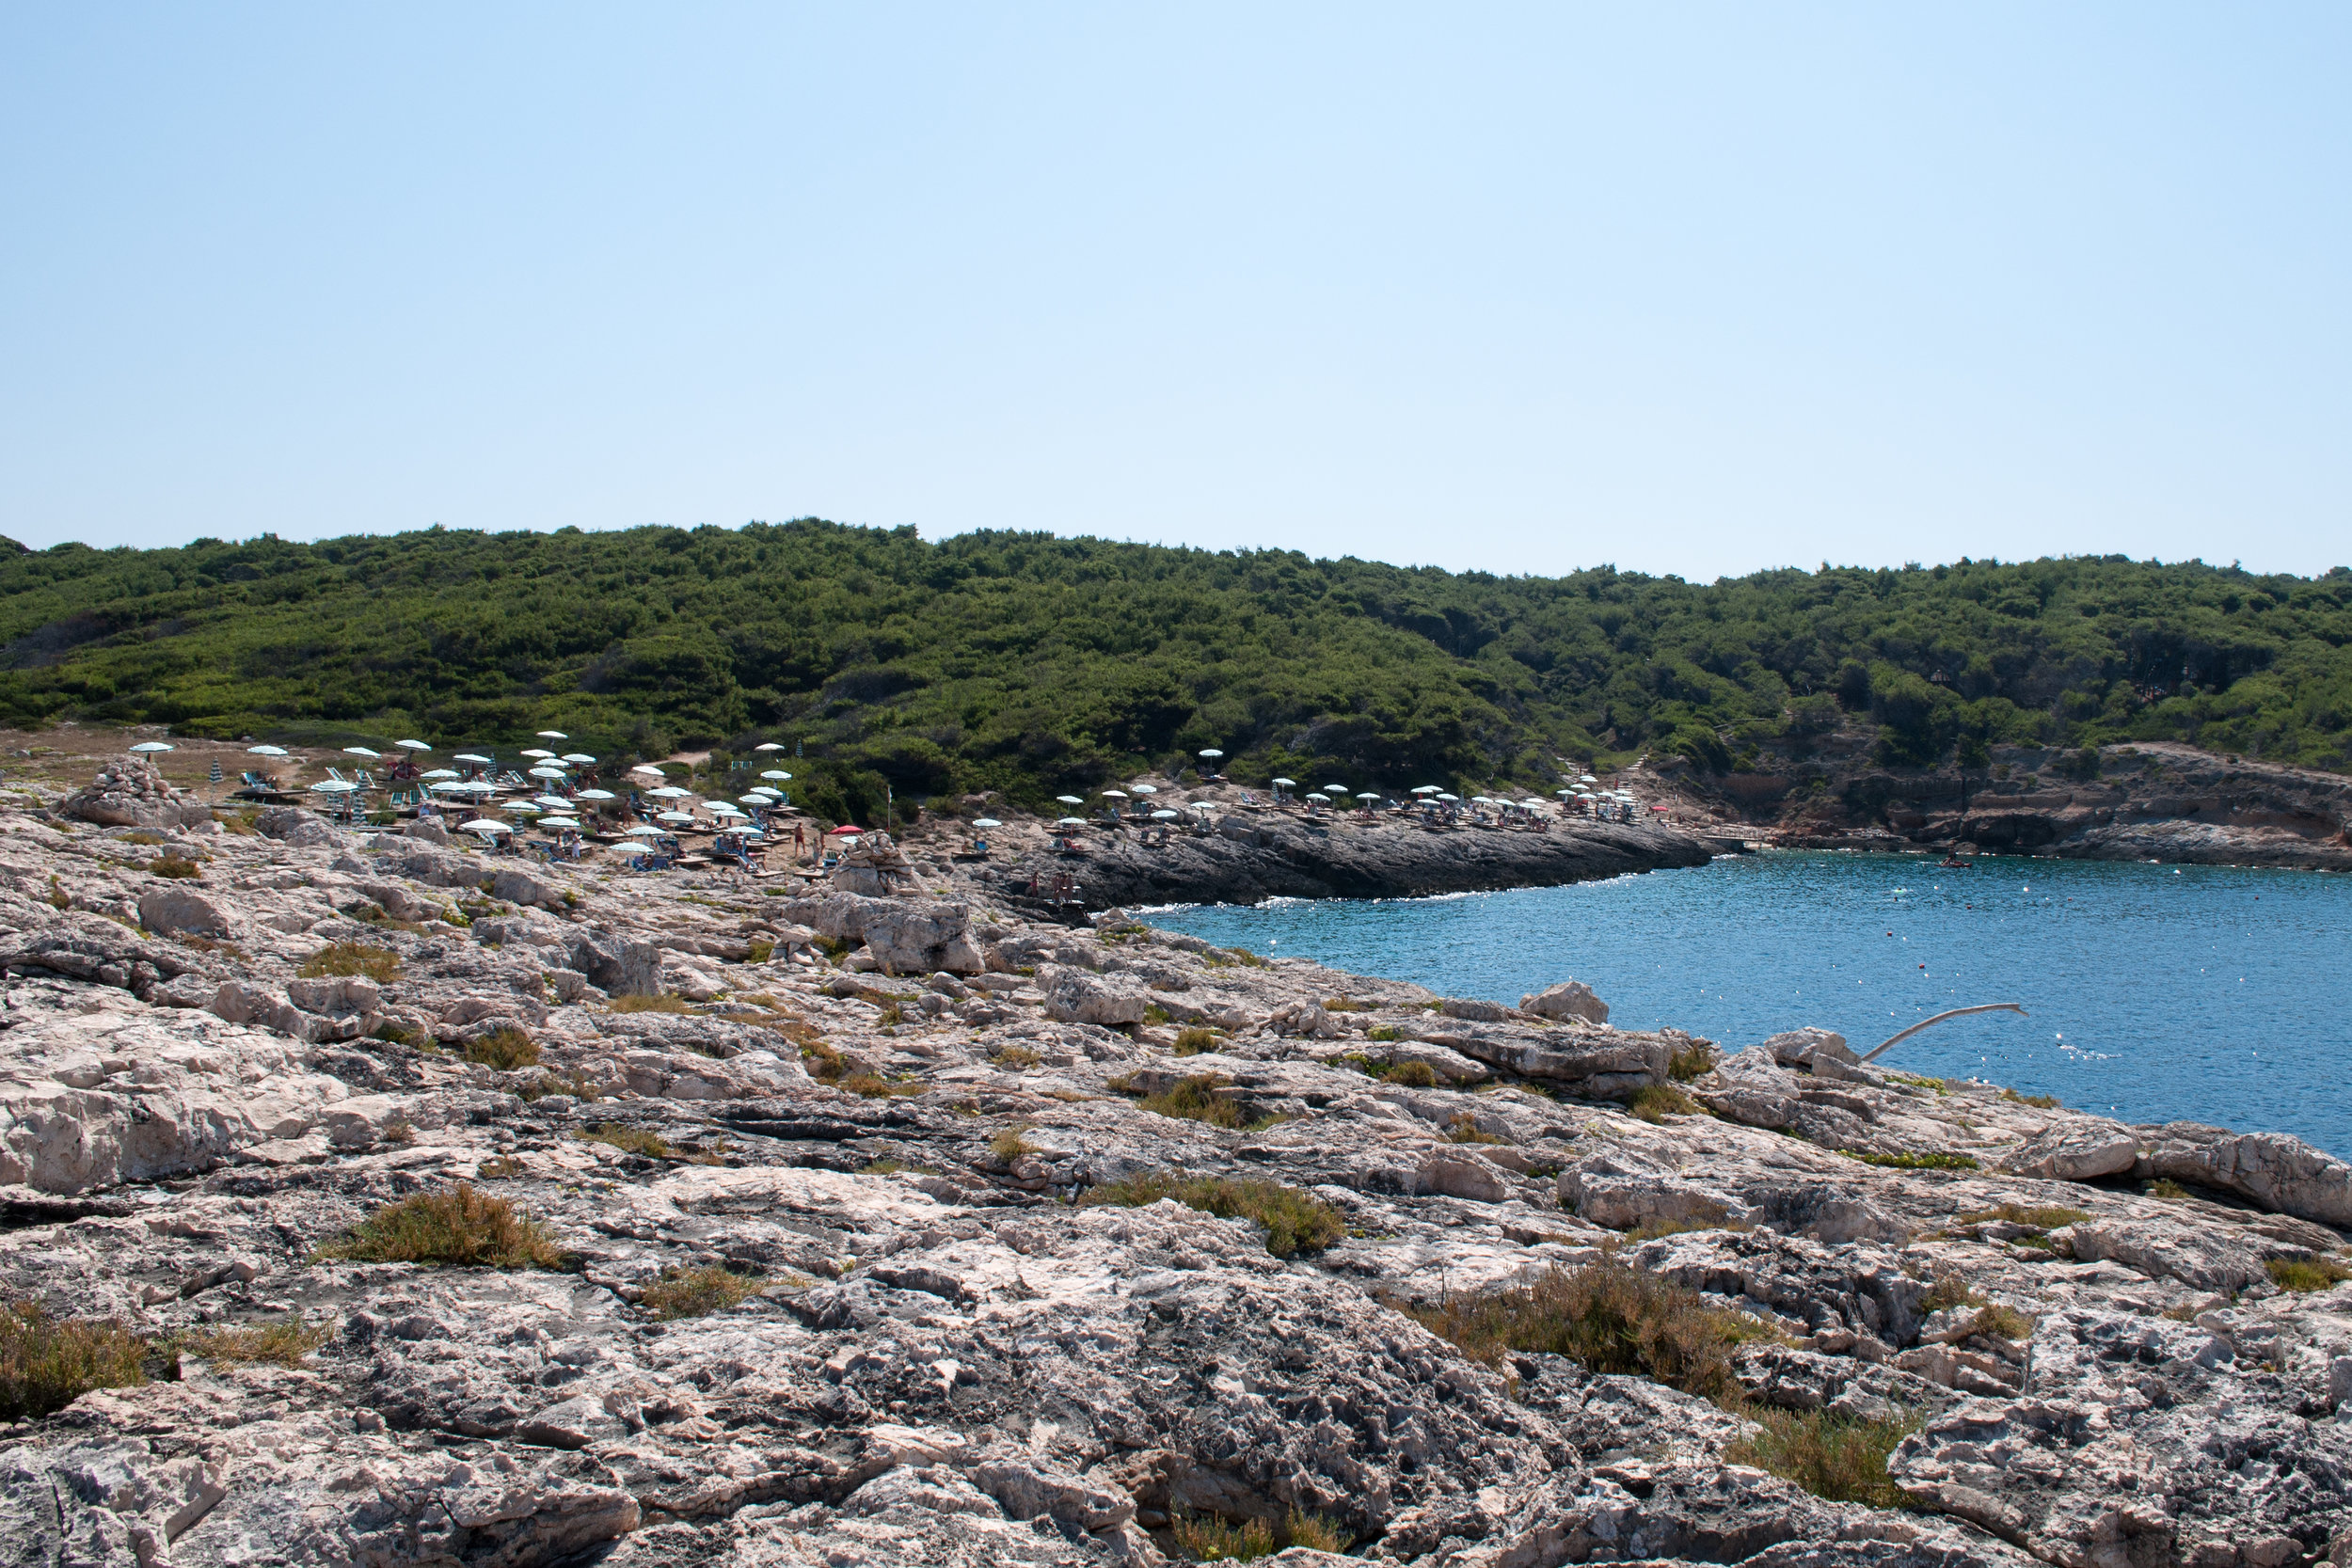 A long shot of a rocky island with lush trees in the distance.